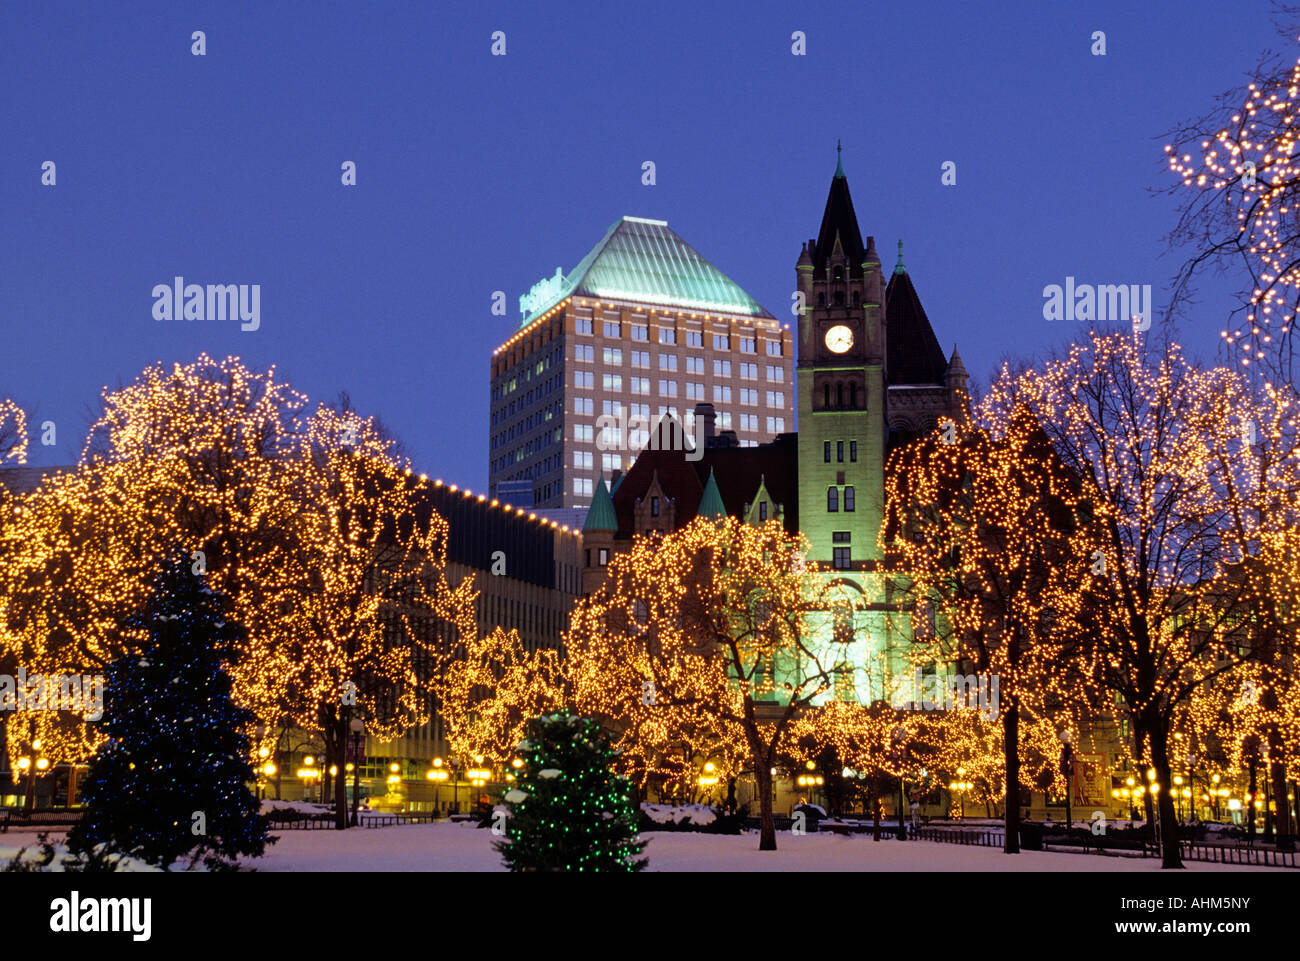 RICE PARK IN DOWNTOWN ST. PAUL, MINNESOTA DECORATED FOR ...